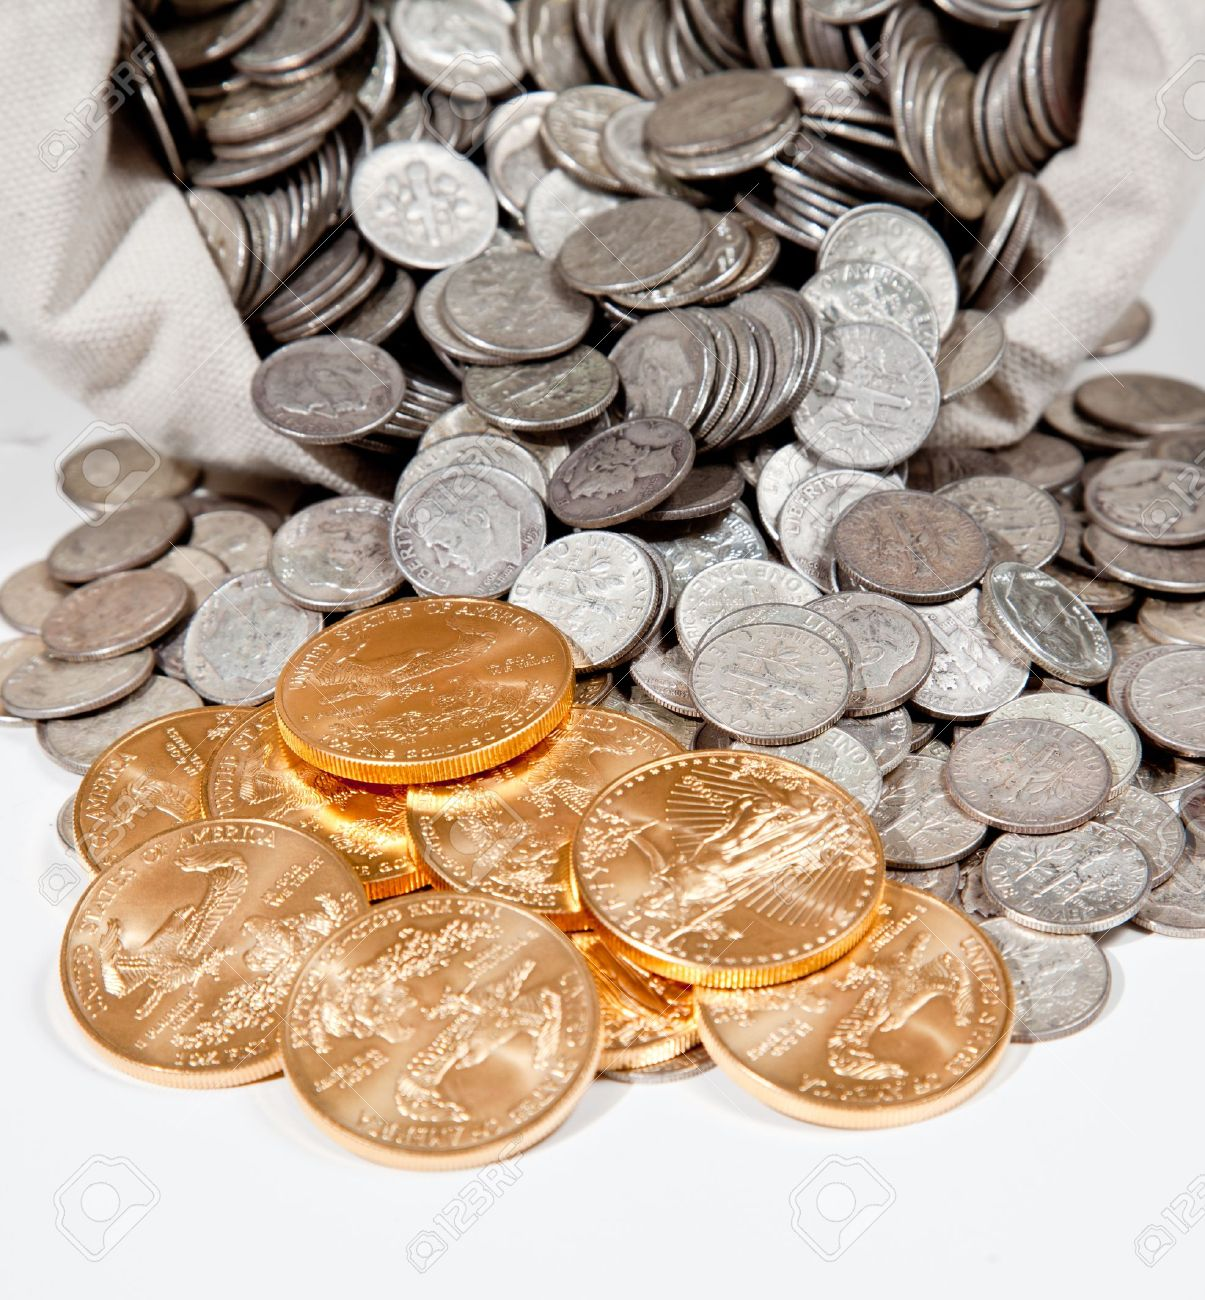 Gold Coin Purchase Near Me Gold Coins Buy US Mint Gold Coins